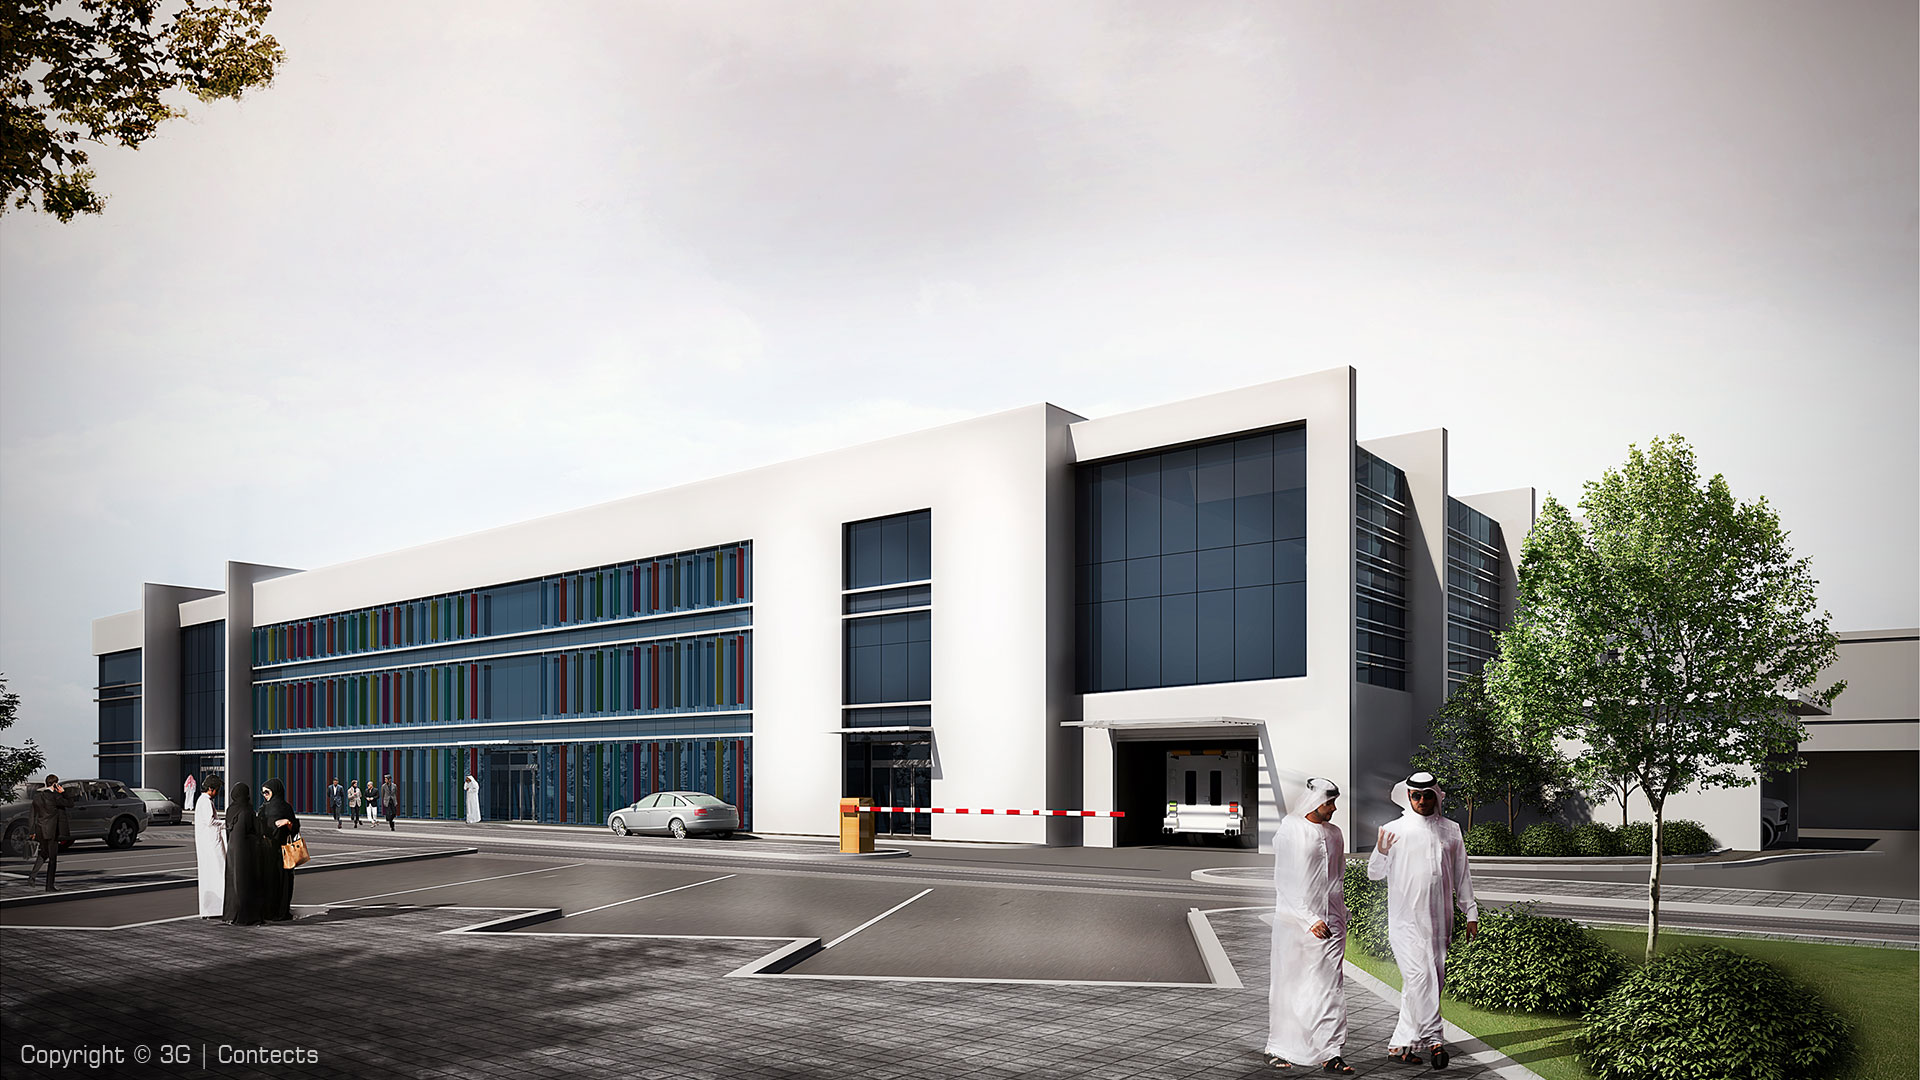 Zayed Military Hospital (Abu Dhabi) Expansion